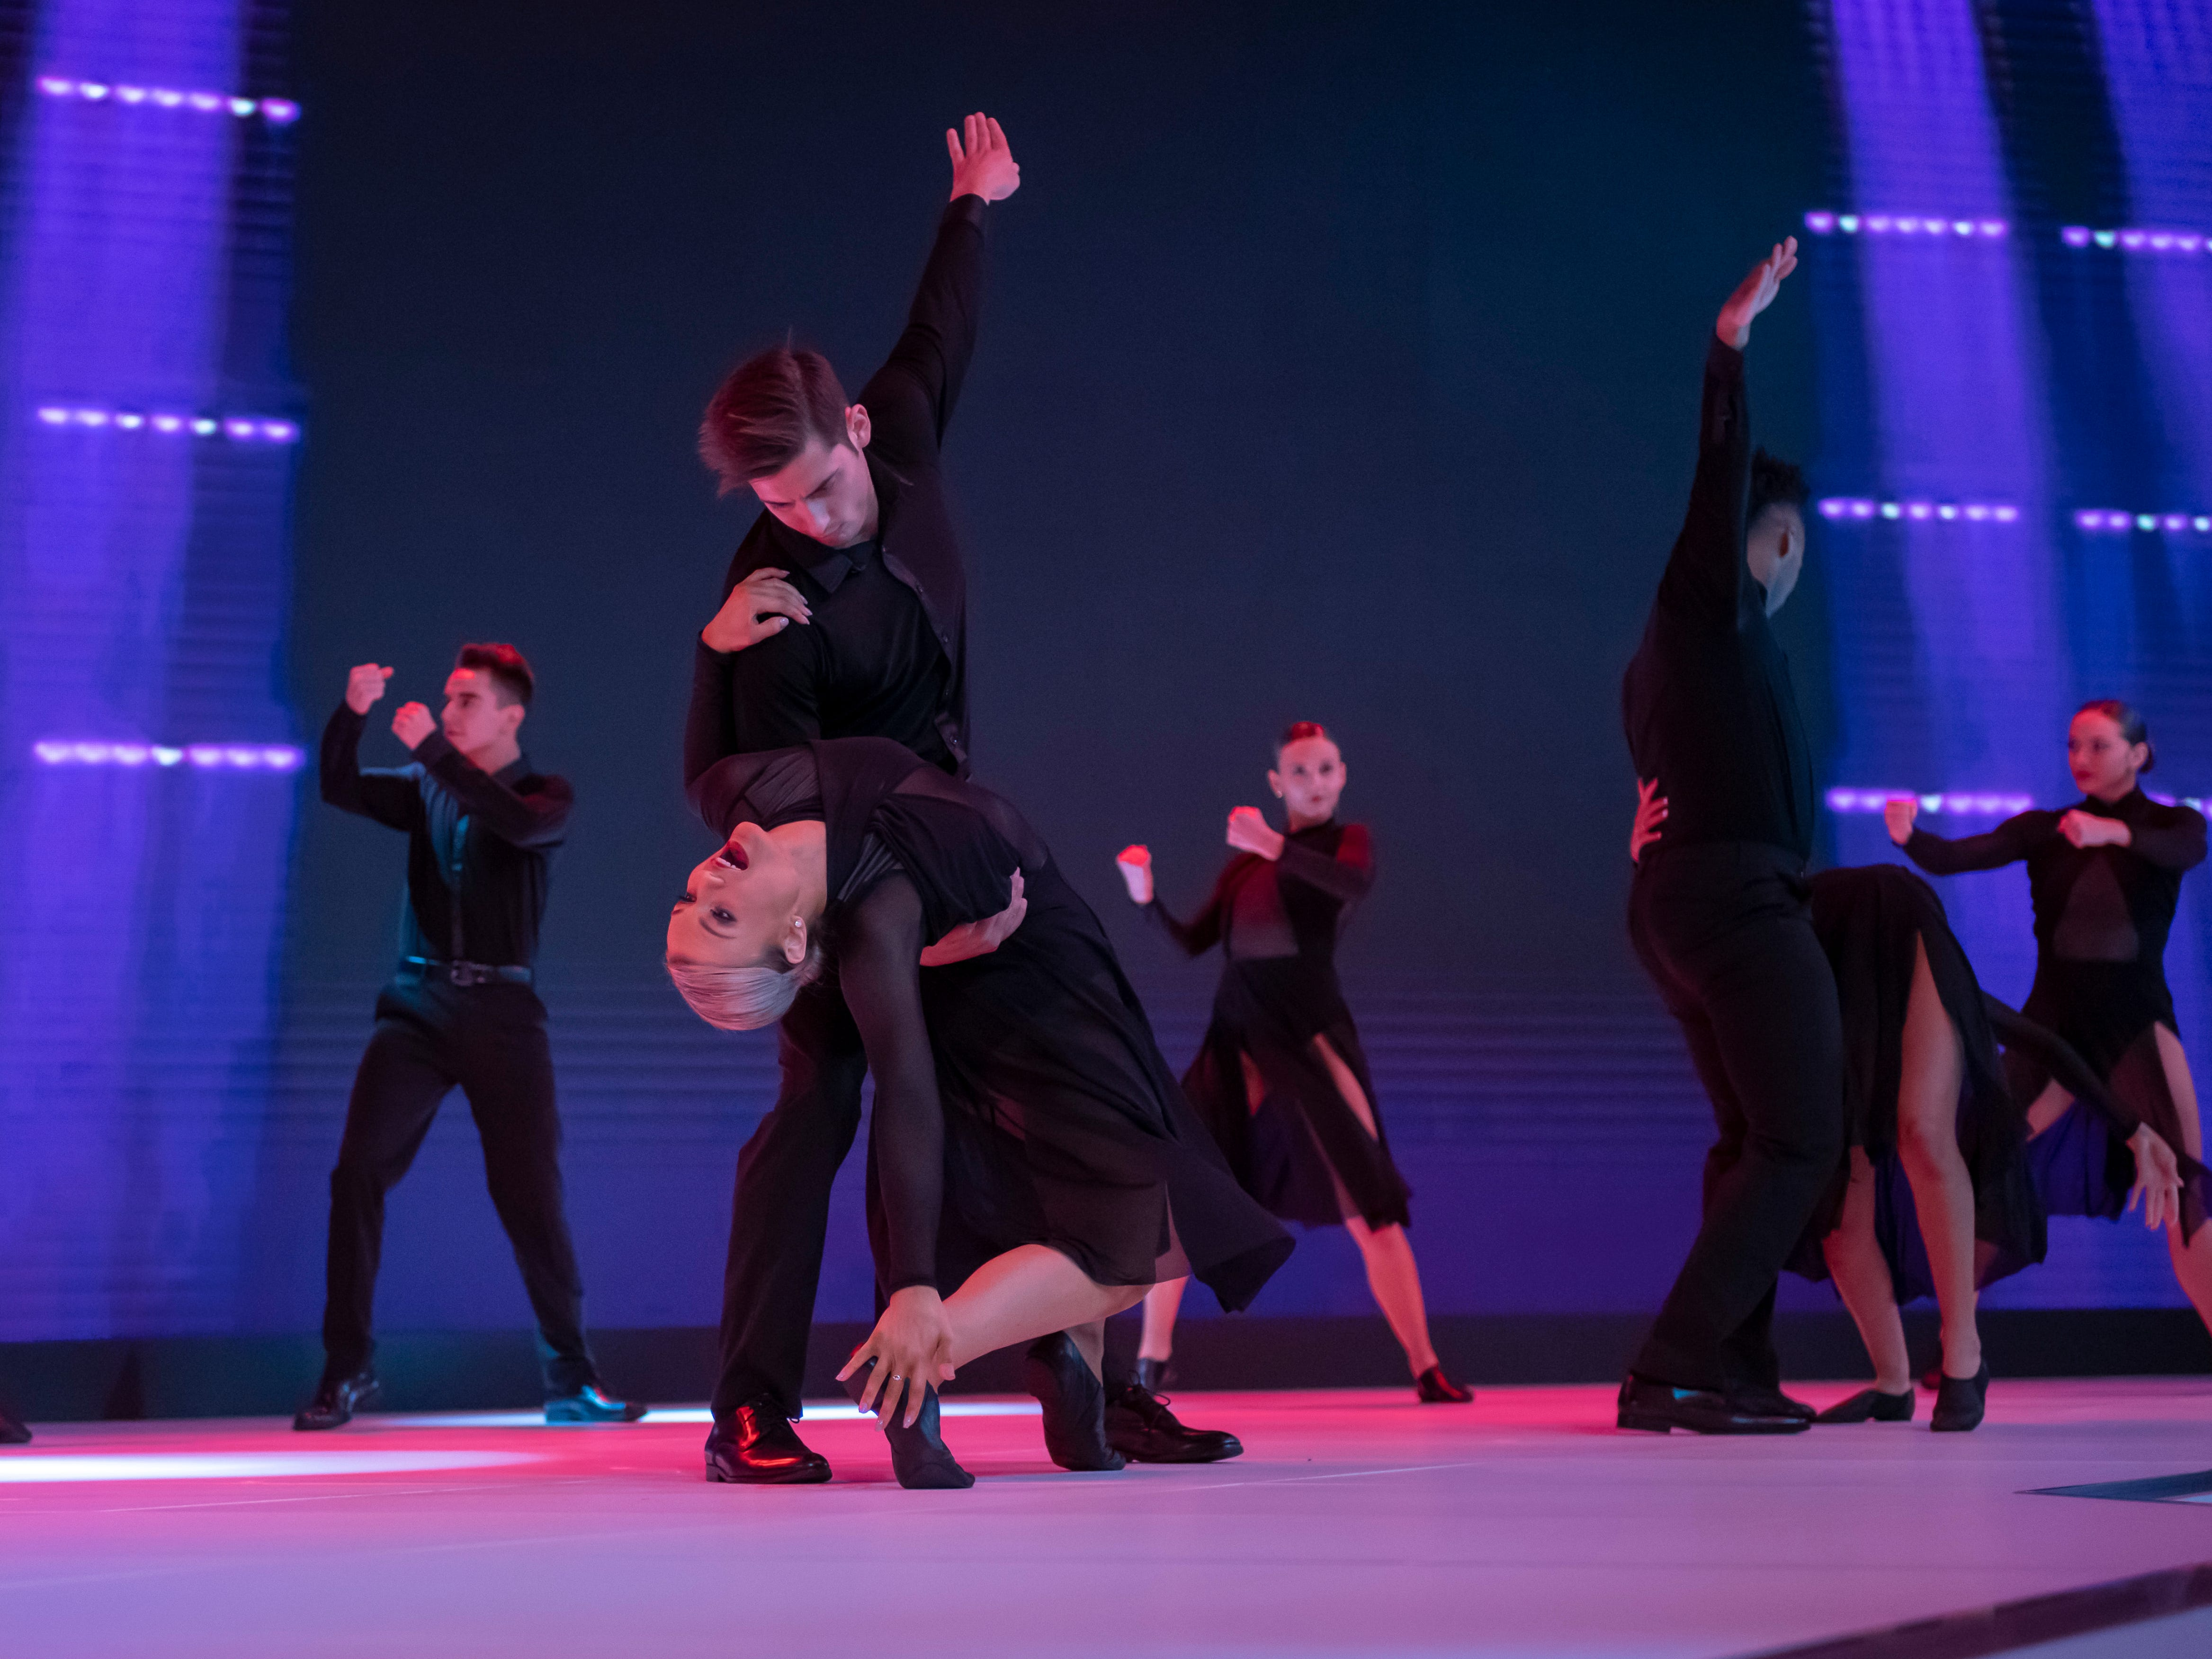 Dancers perform before the reveal of the GAC Entranze concept.